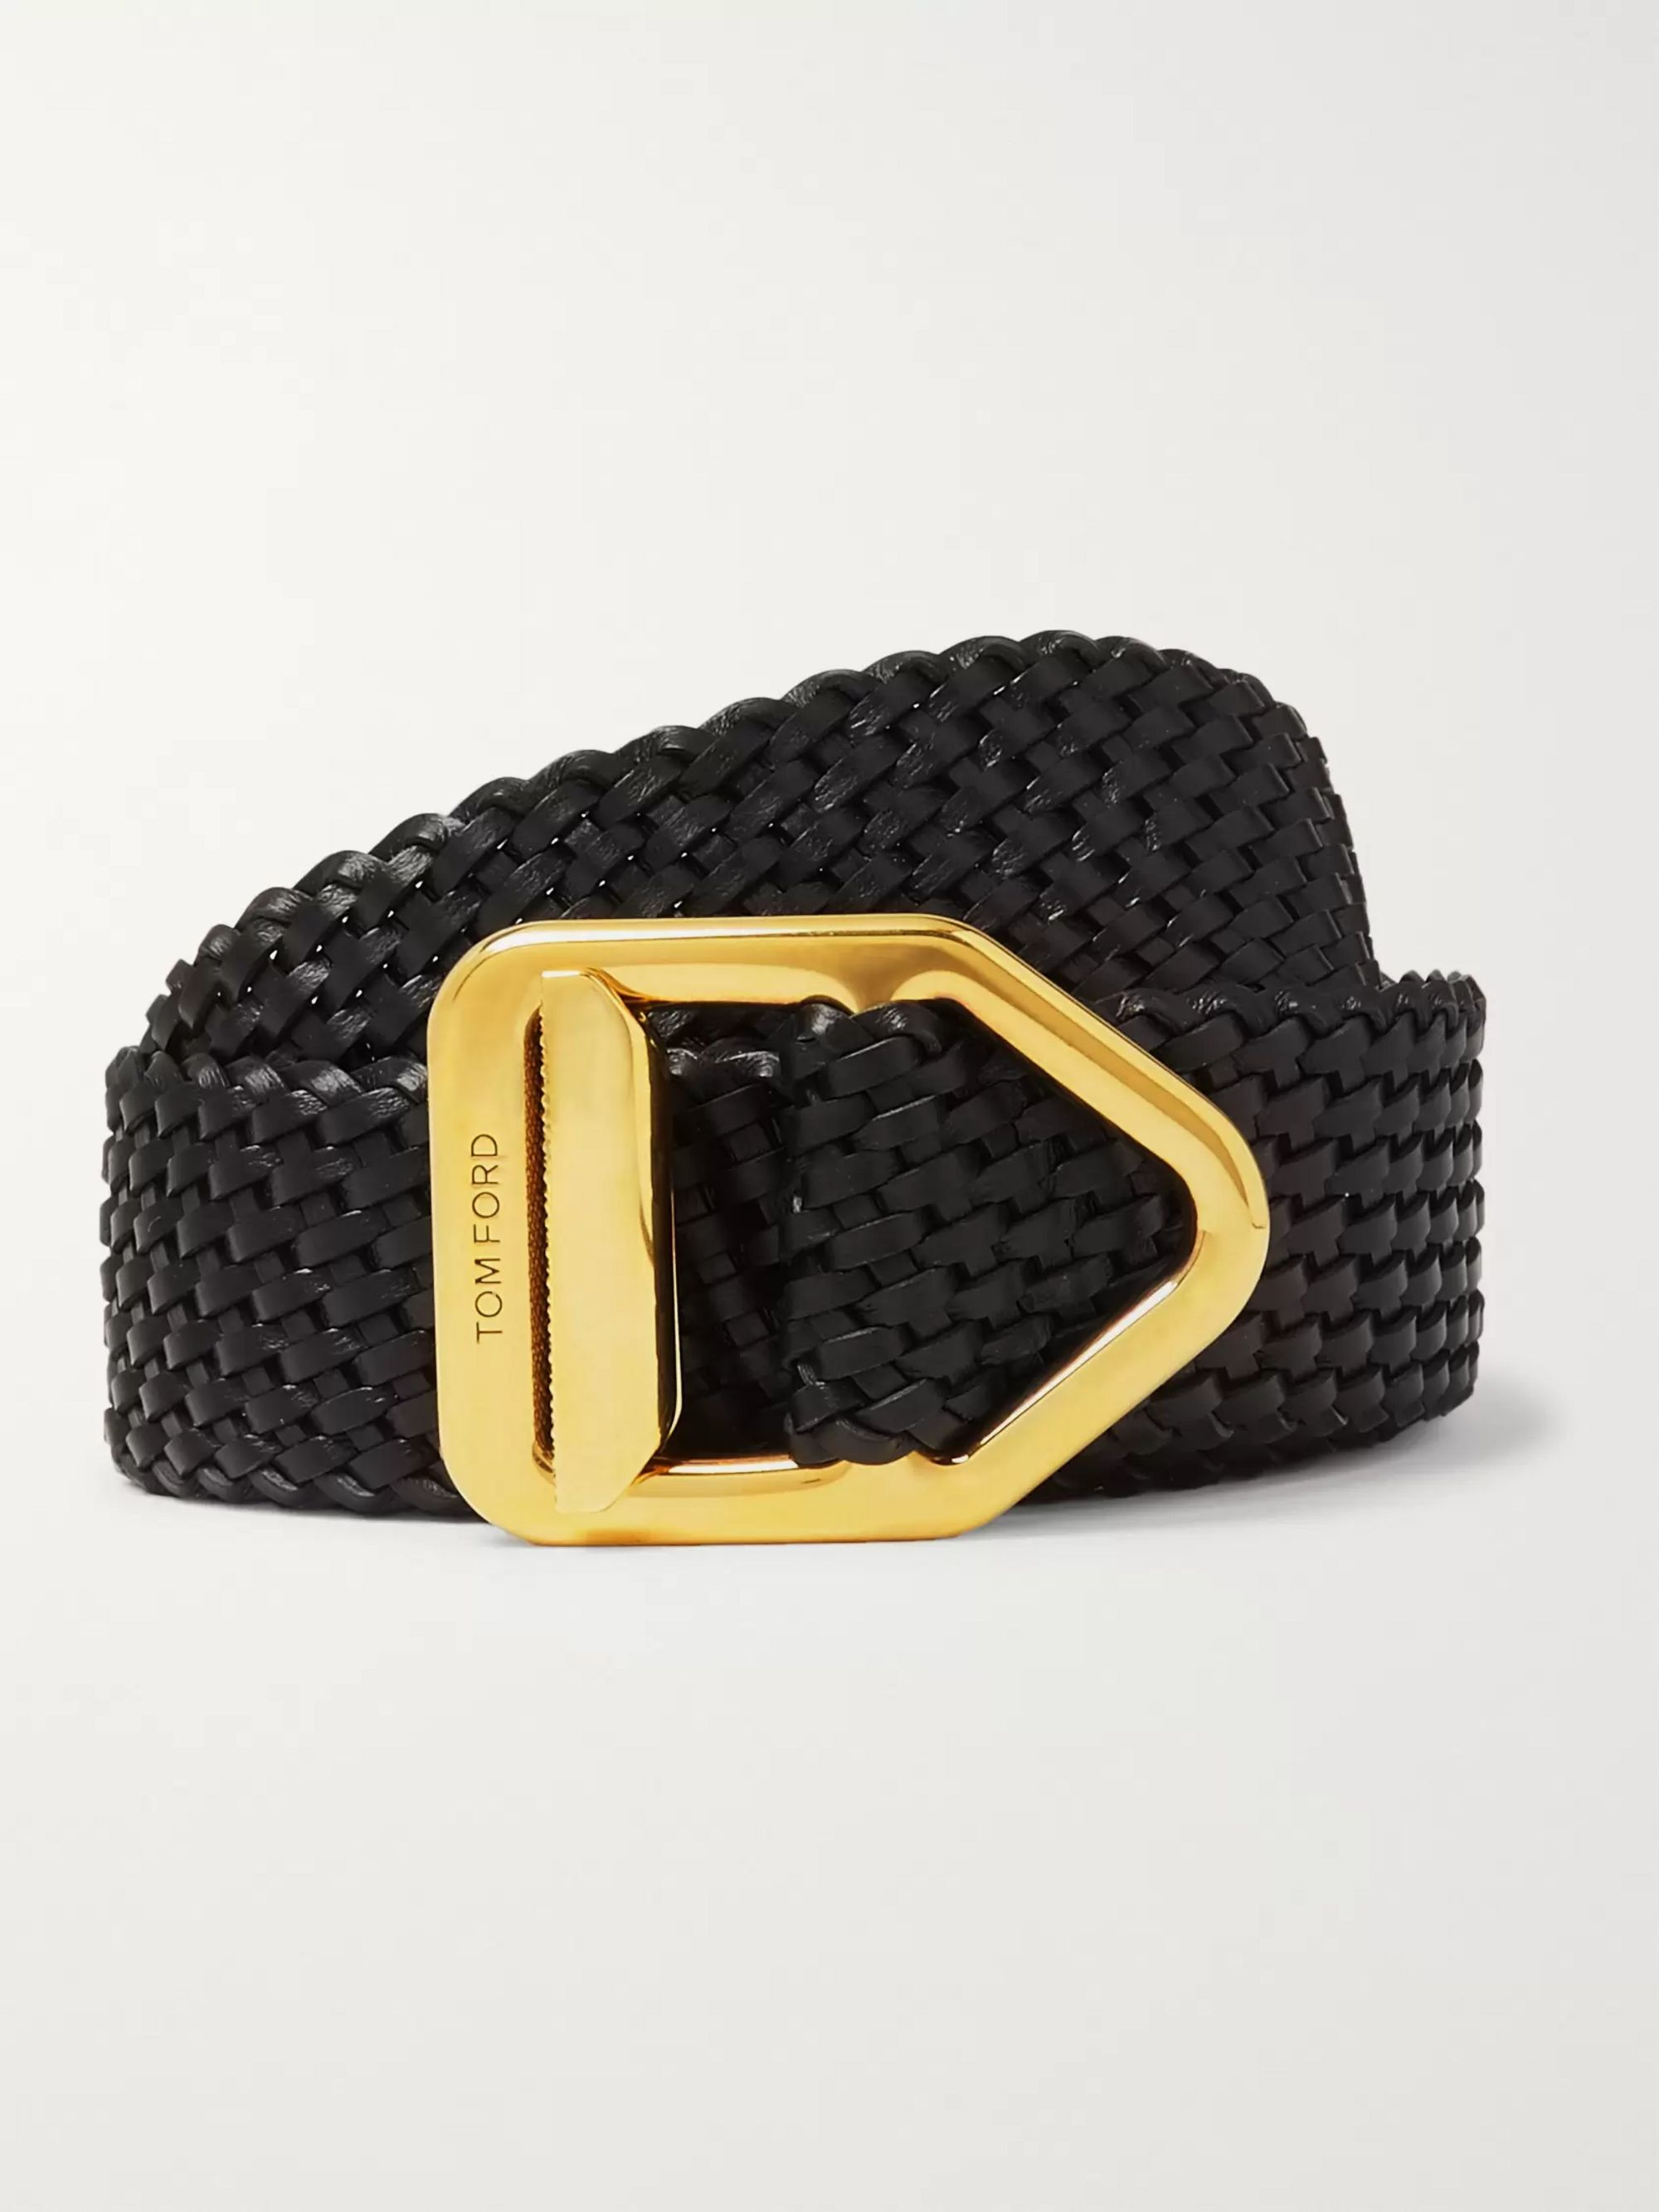 TOM FORD 3cm Woven Leather Belt